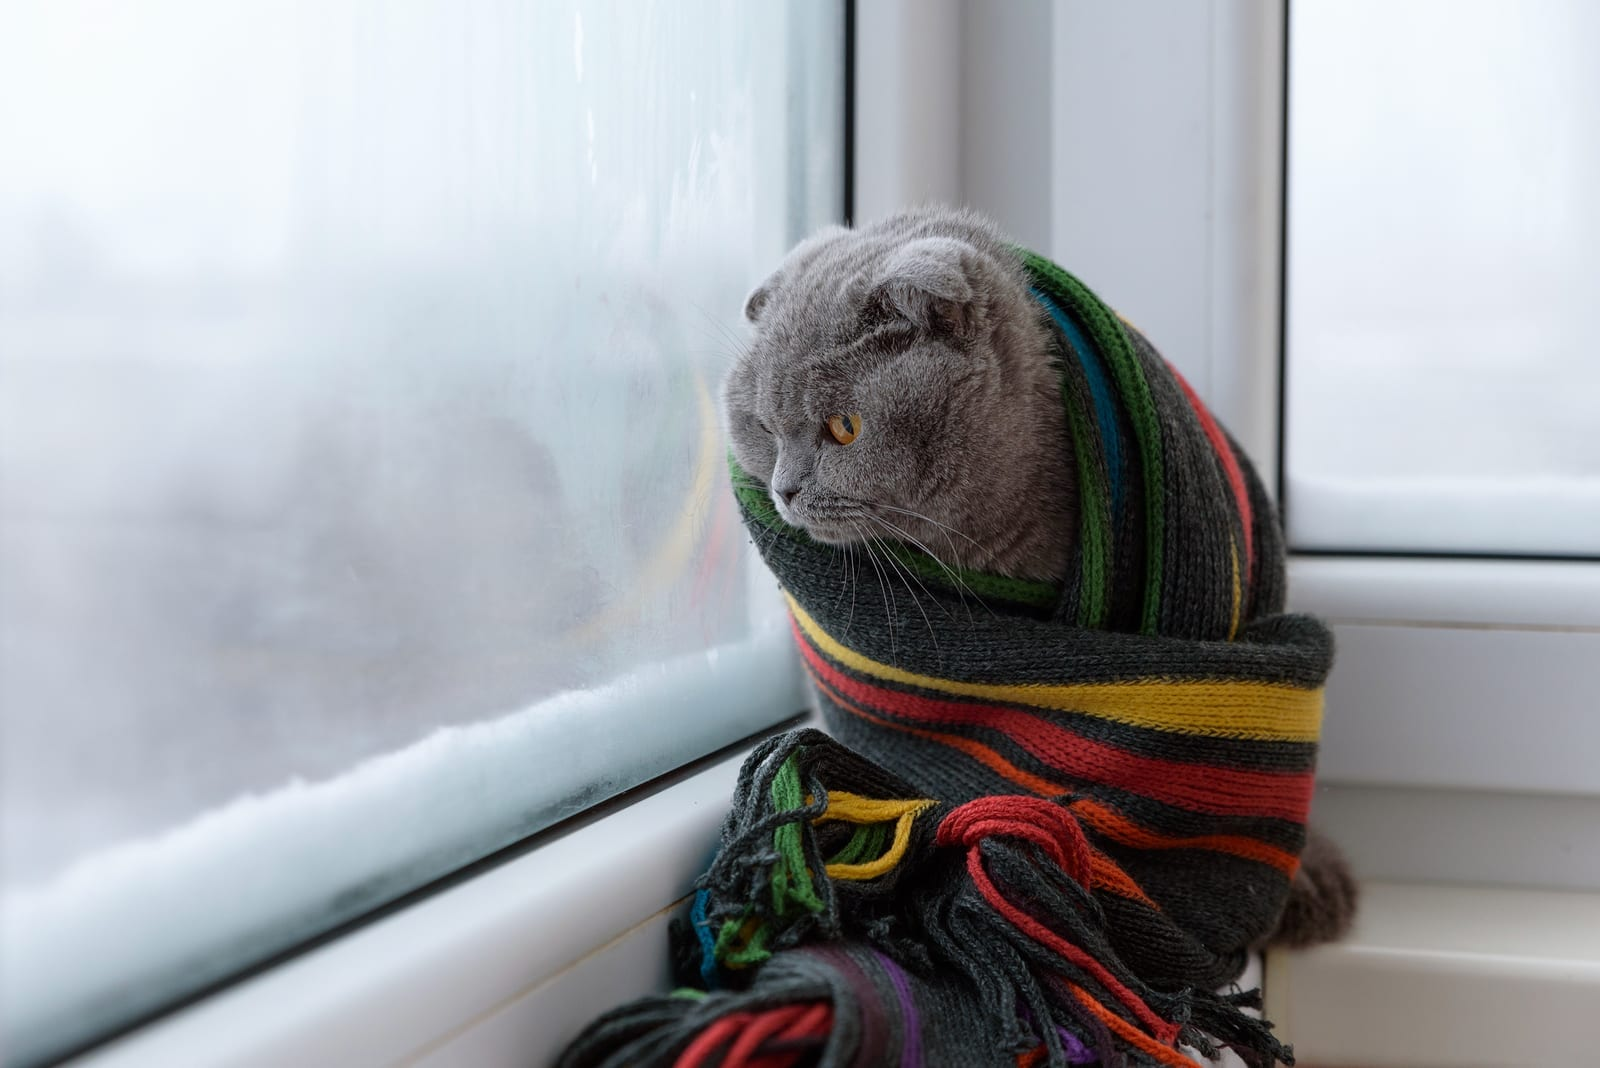 cat of Scottish British breed wrapped in a warm scarf looking out the window at the snow